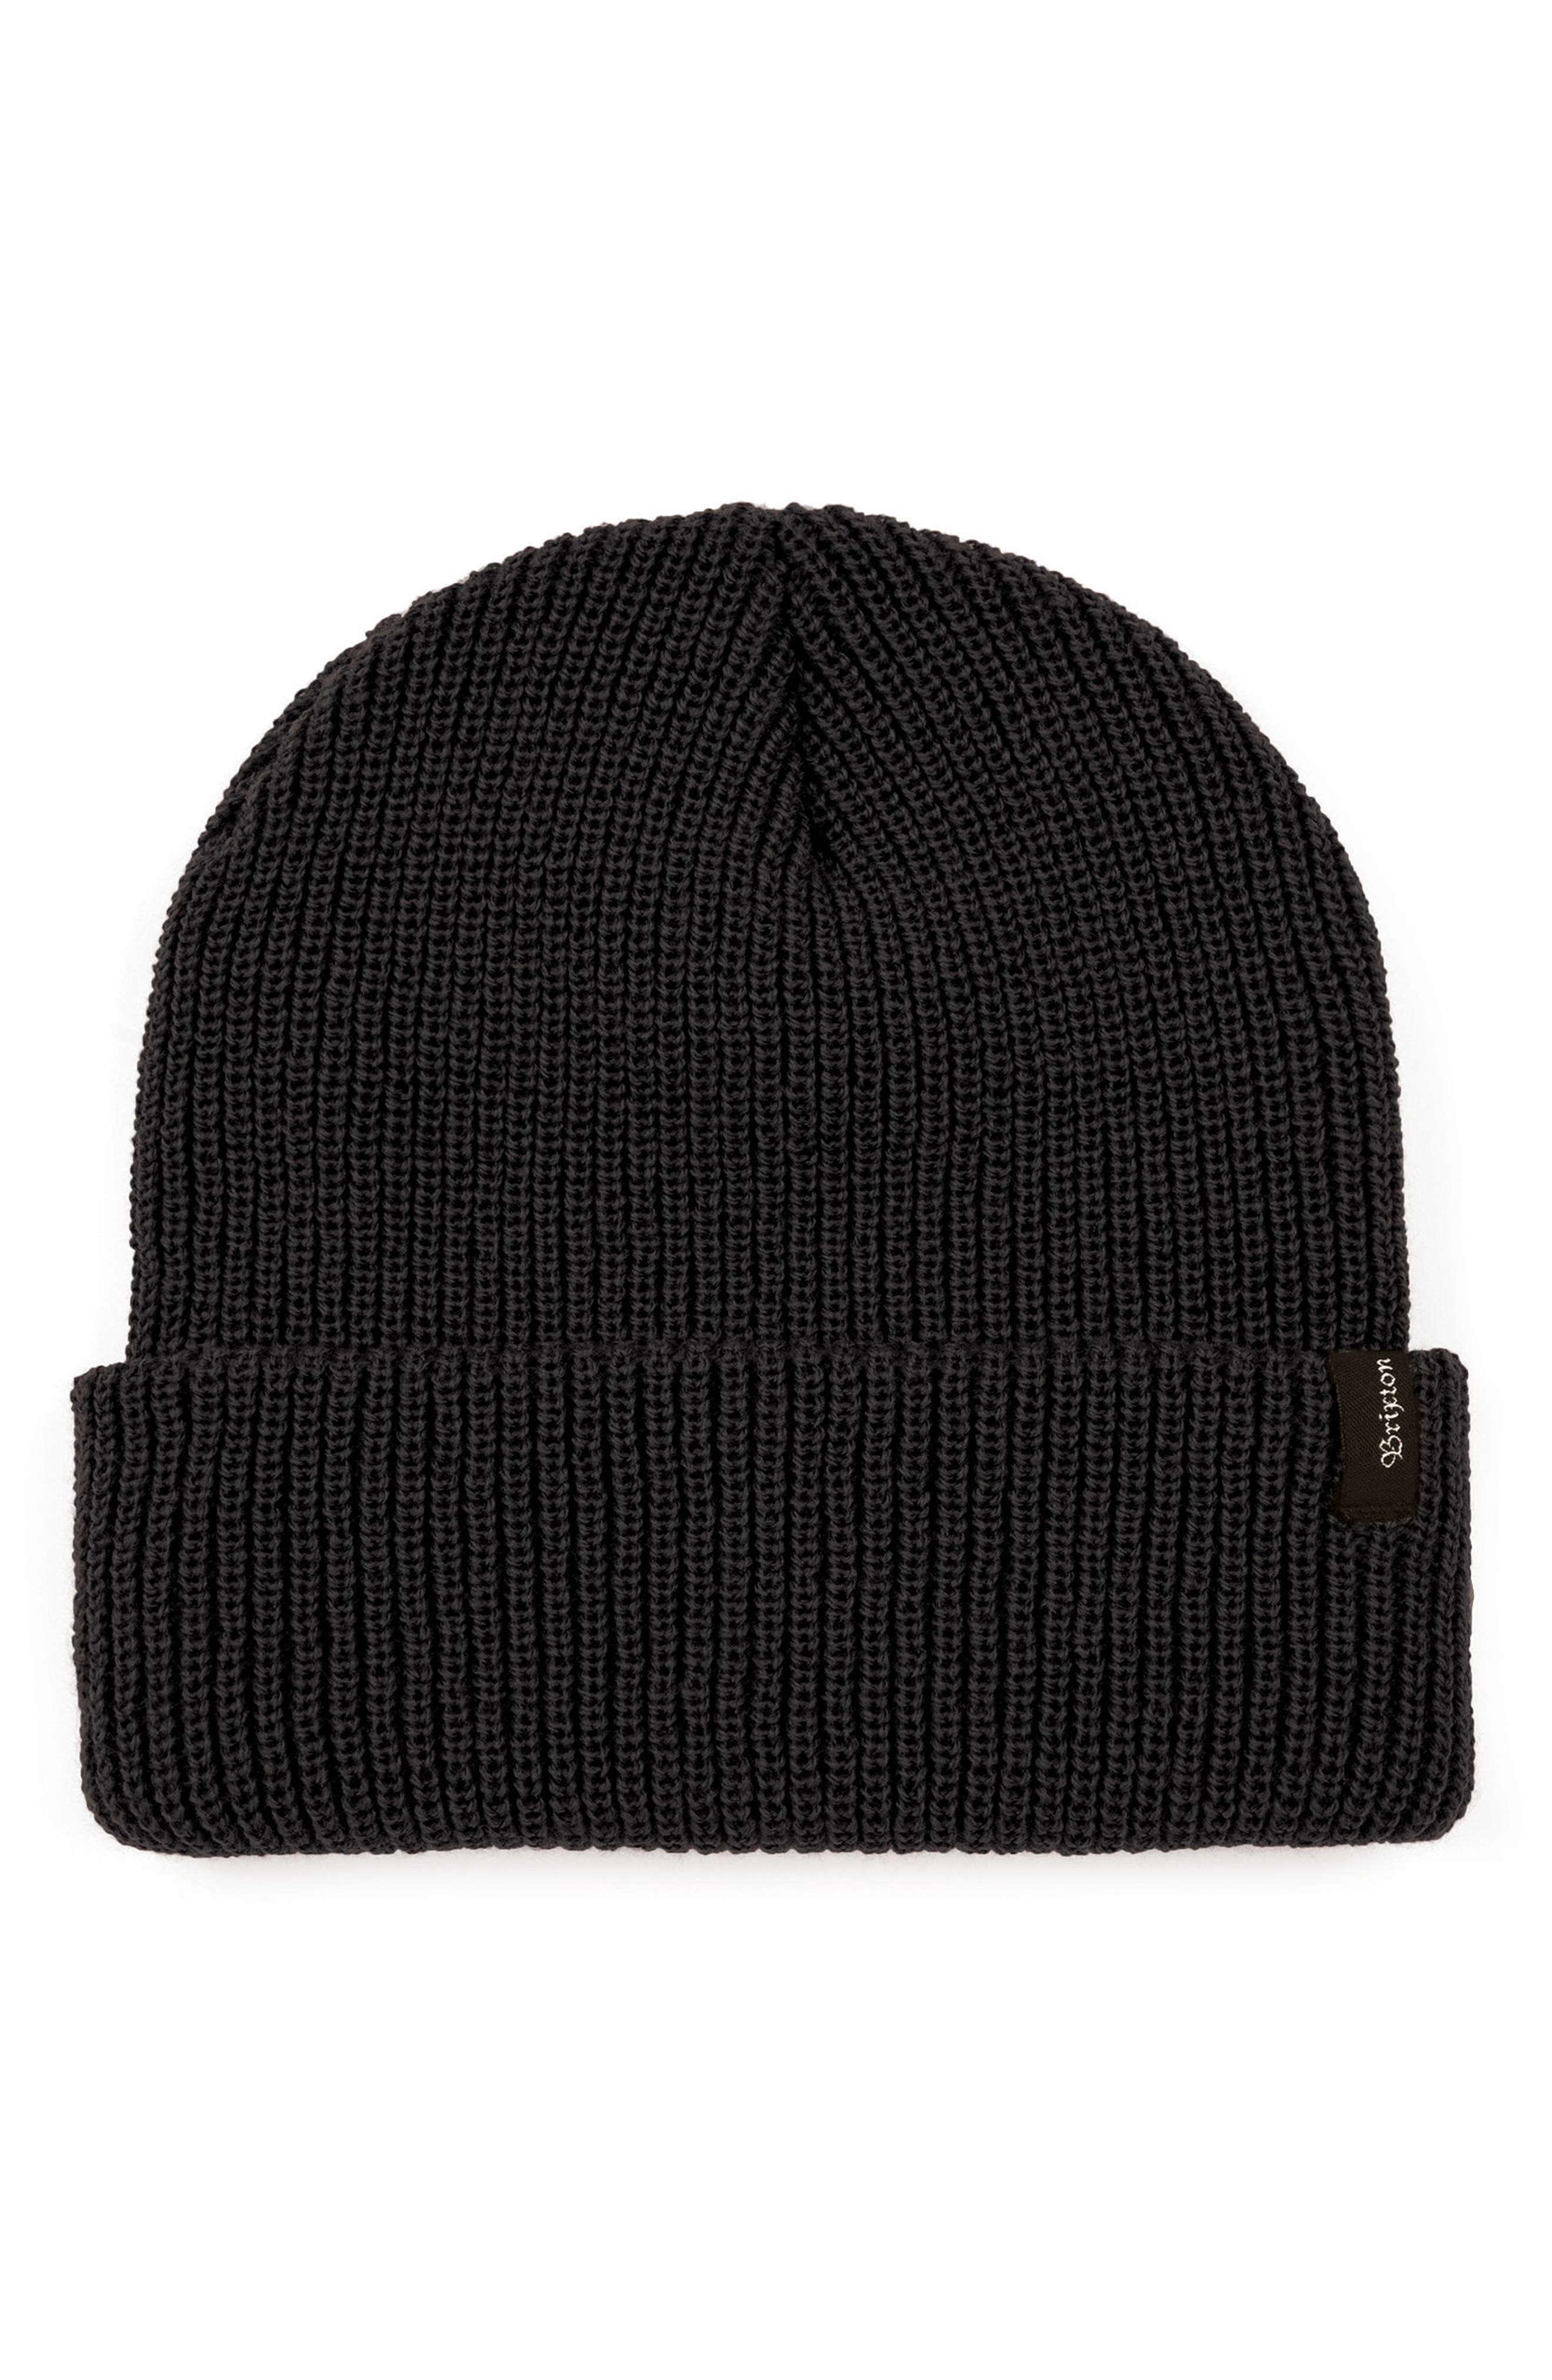 Heist Beanie,                         Main,                         color,